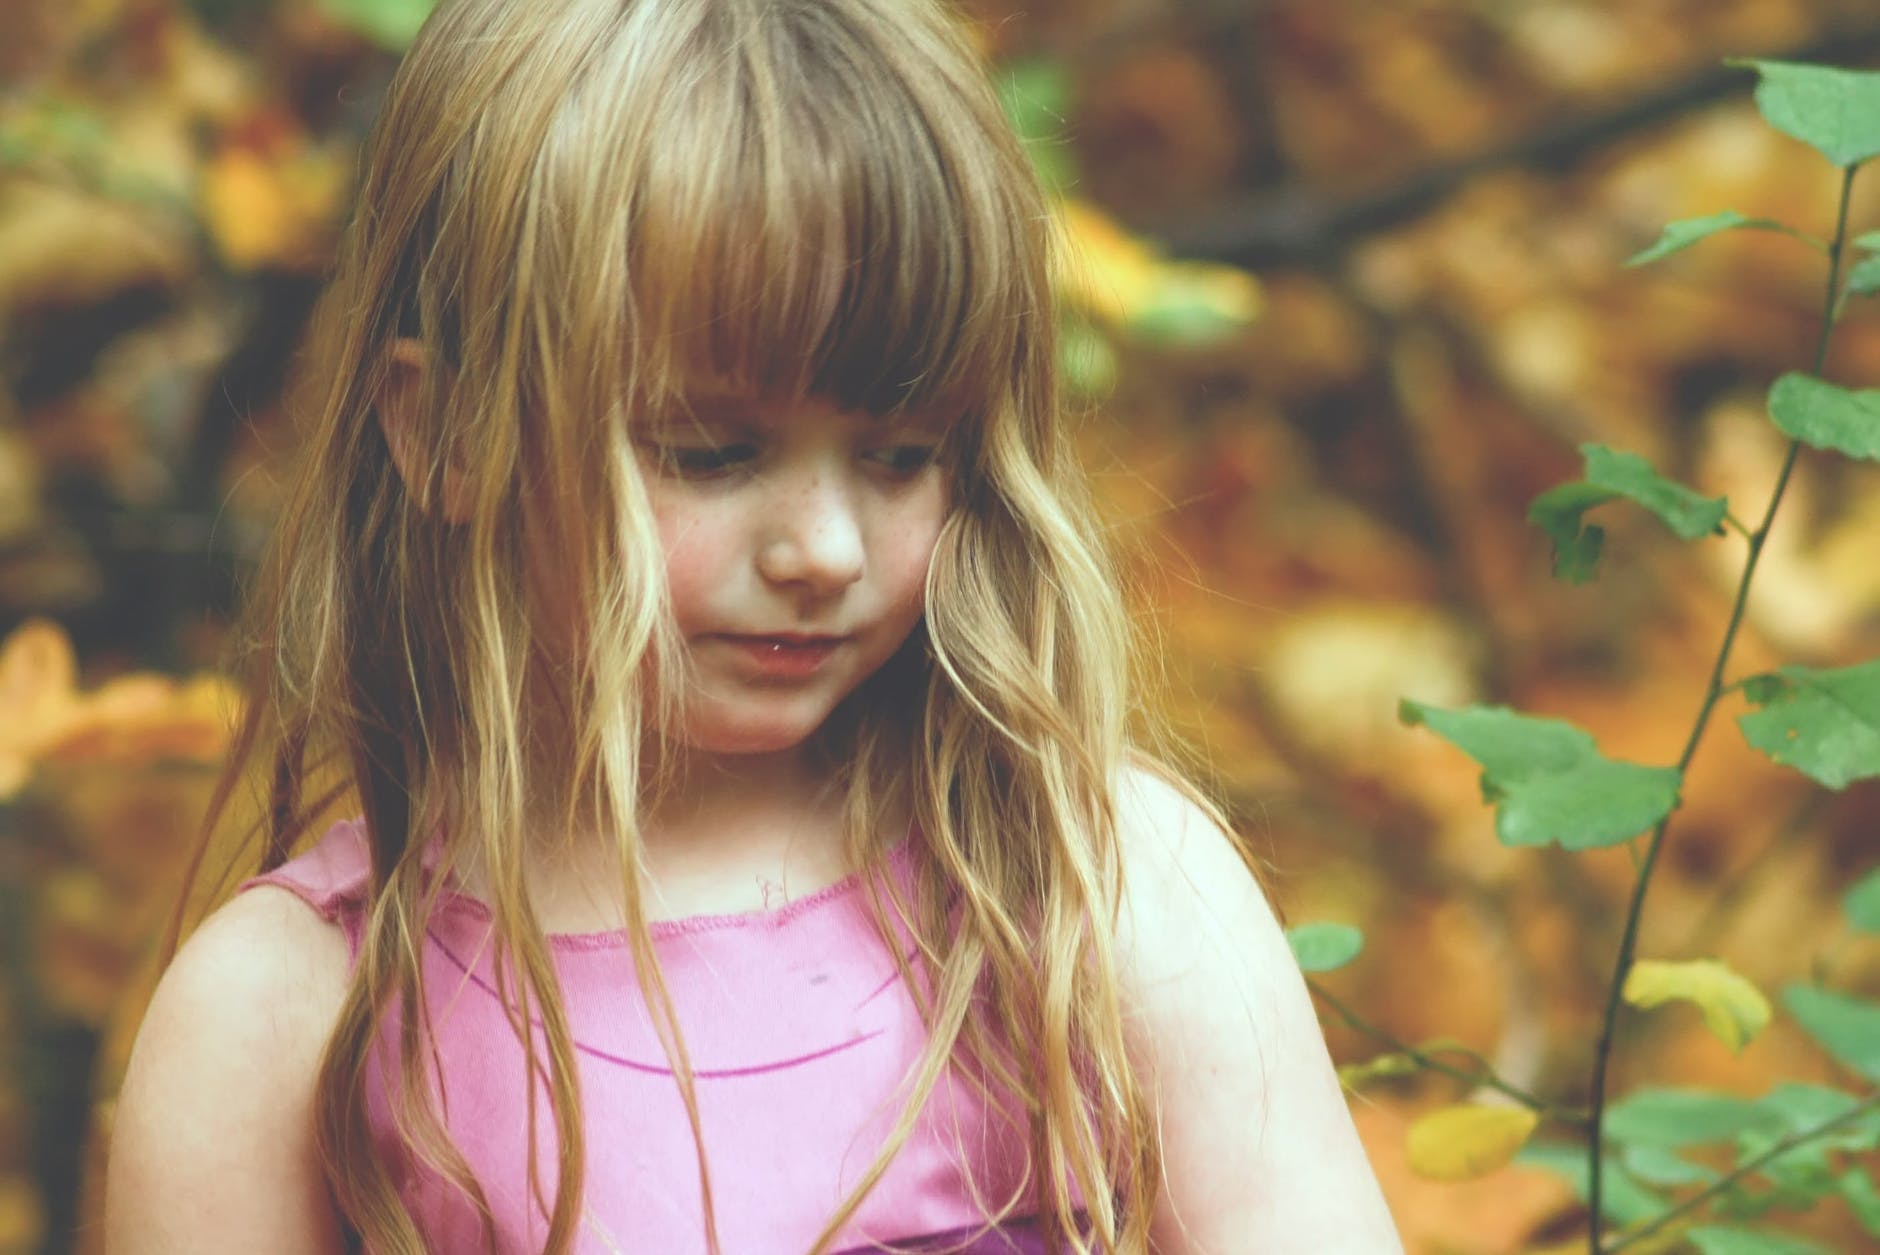 how to help a child build confidence and self-esteem